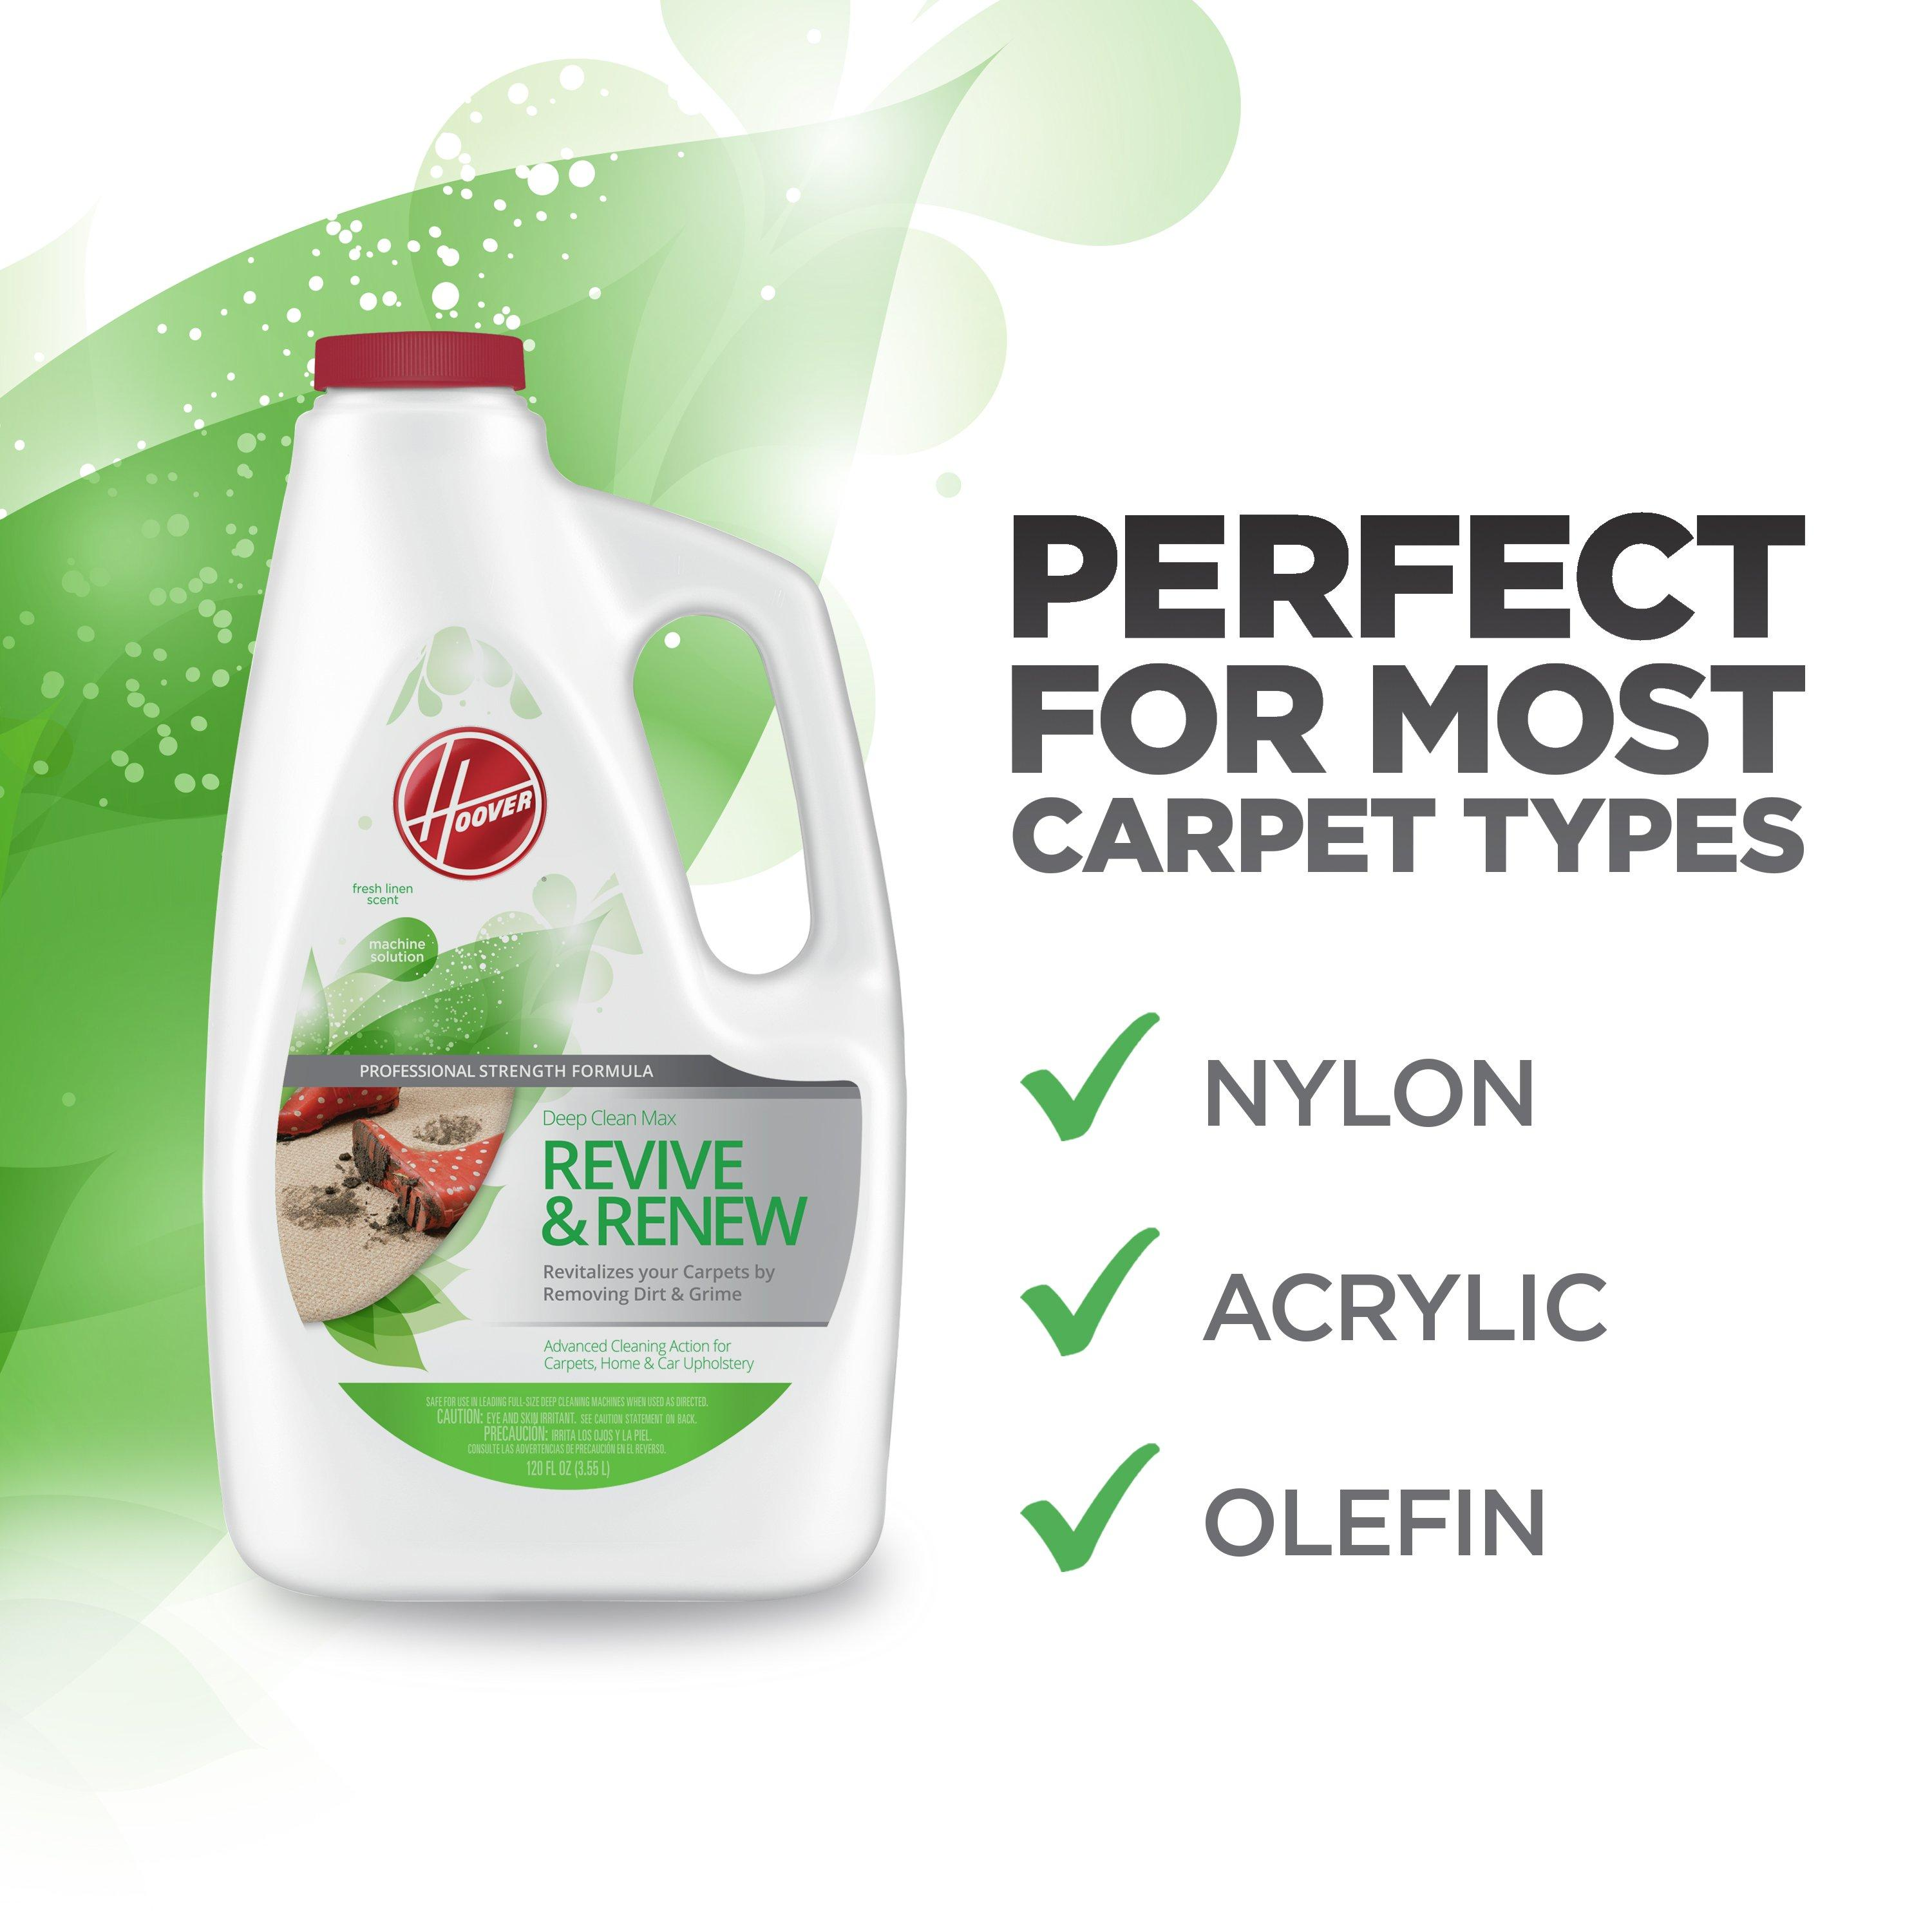 Deep Clean Max - Revive And Renew Carpet Cleaning Solution (120Oz)3